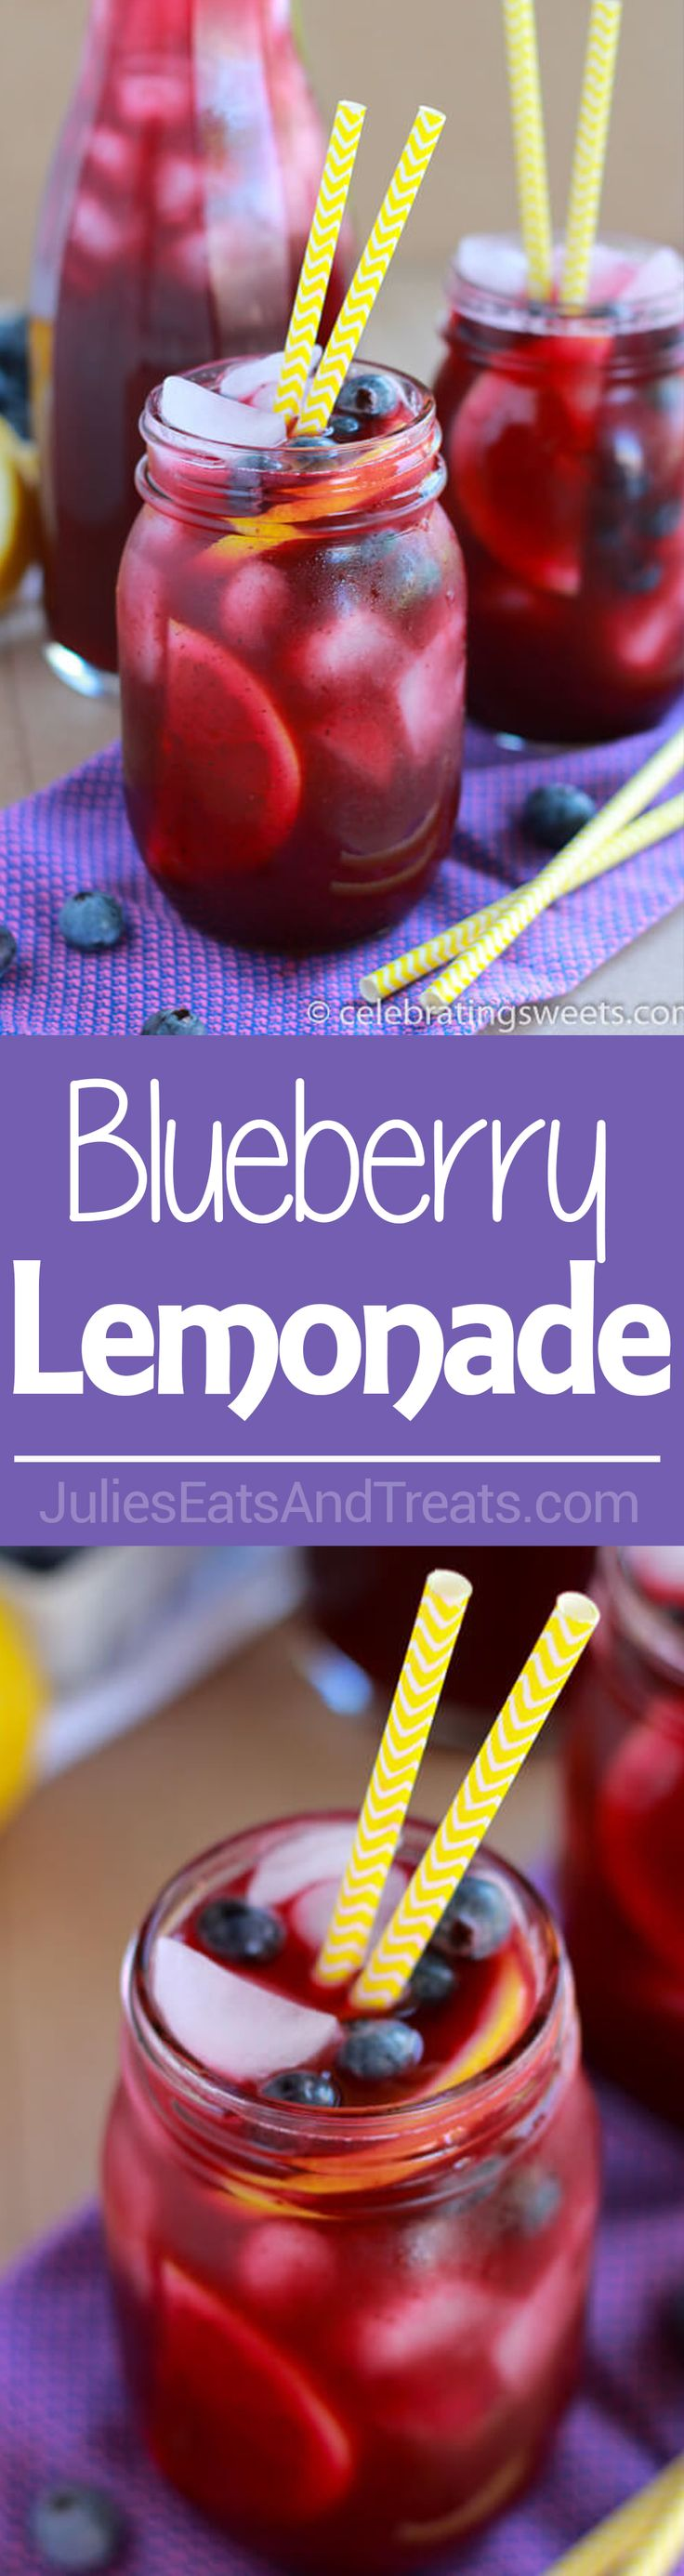 Blueberry Lemonade - Light and refreshing homemade lemonade flavored with fresh blueberries. The perfect summertime drink! via @julieseats